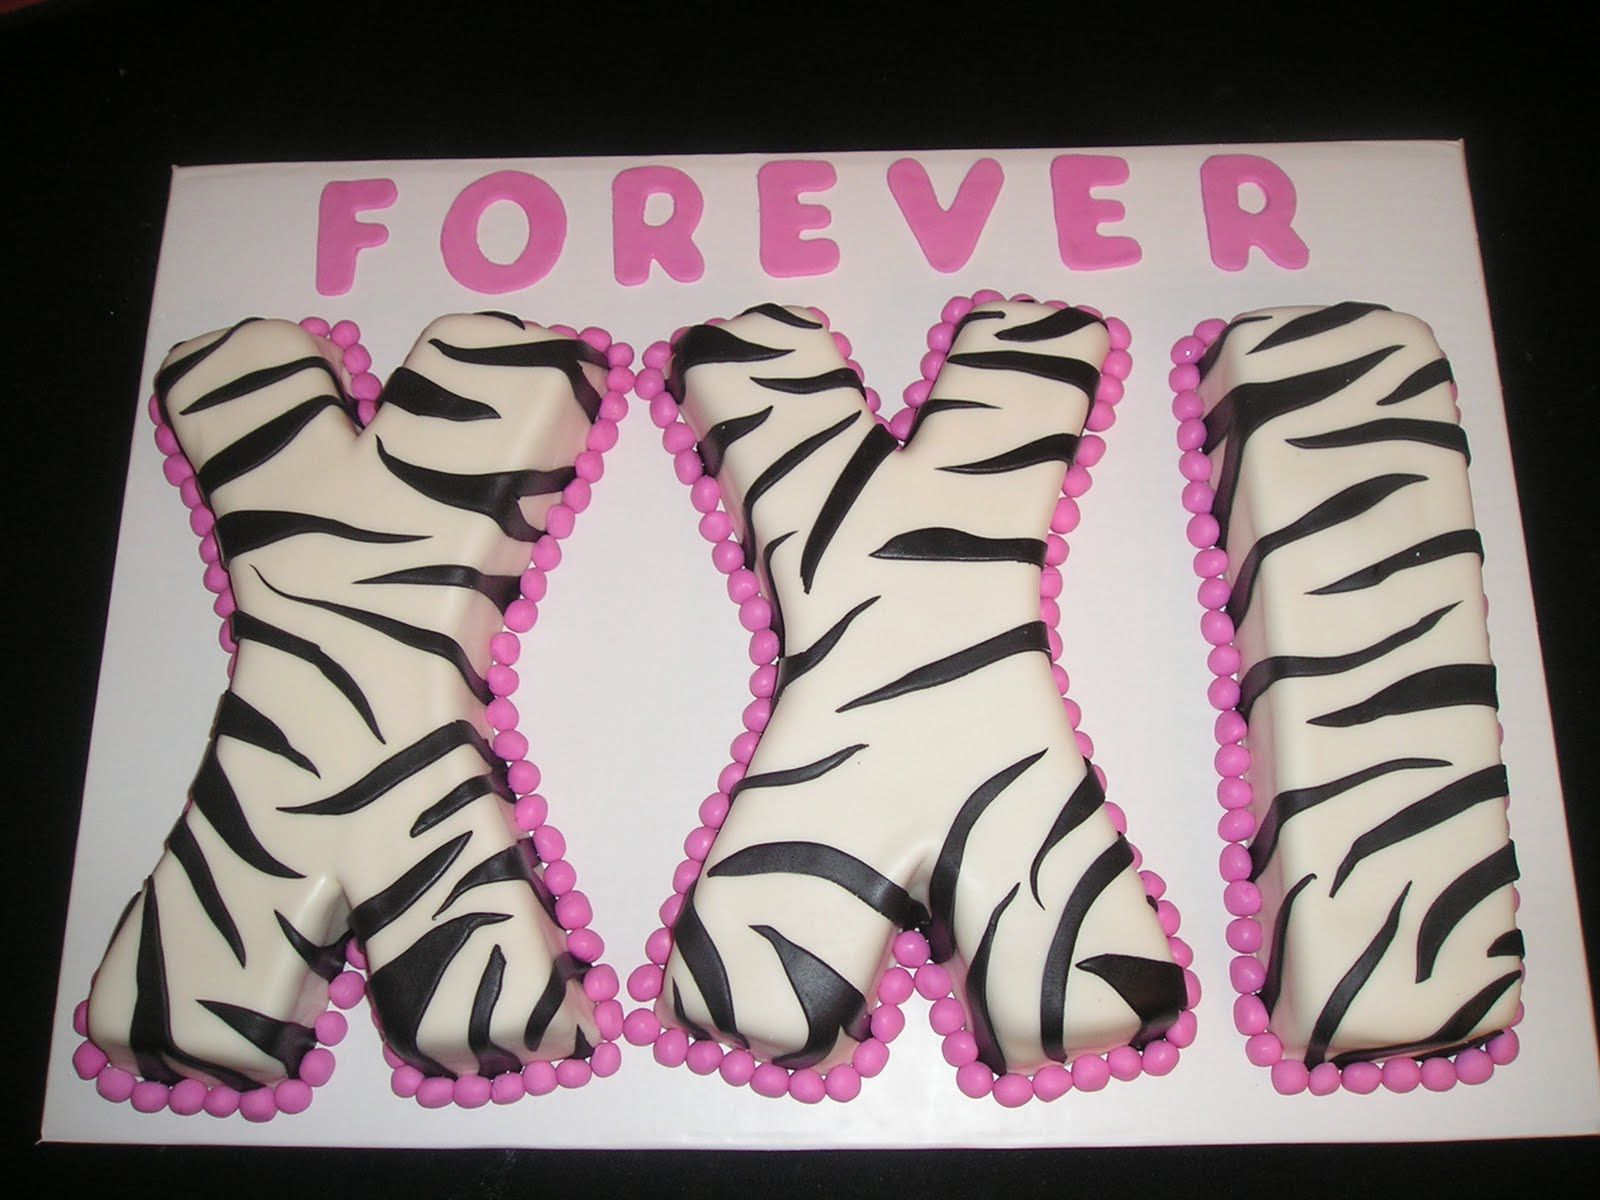 21 Birthday Cake Pictuers rfect for me love the store love the